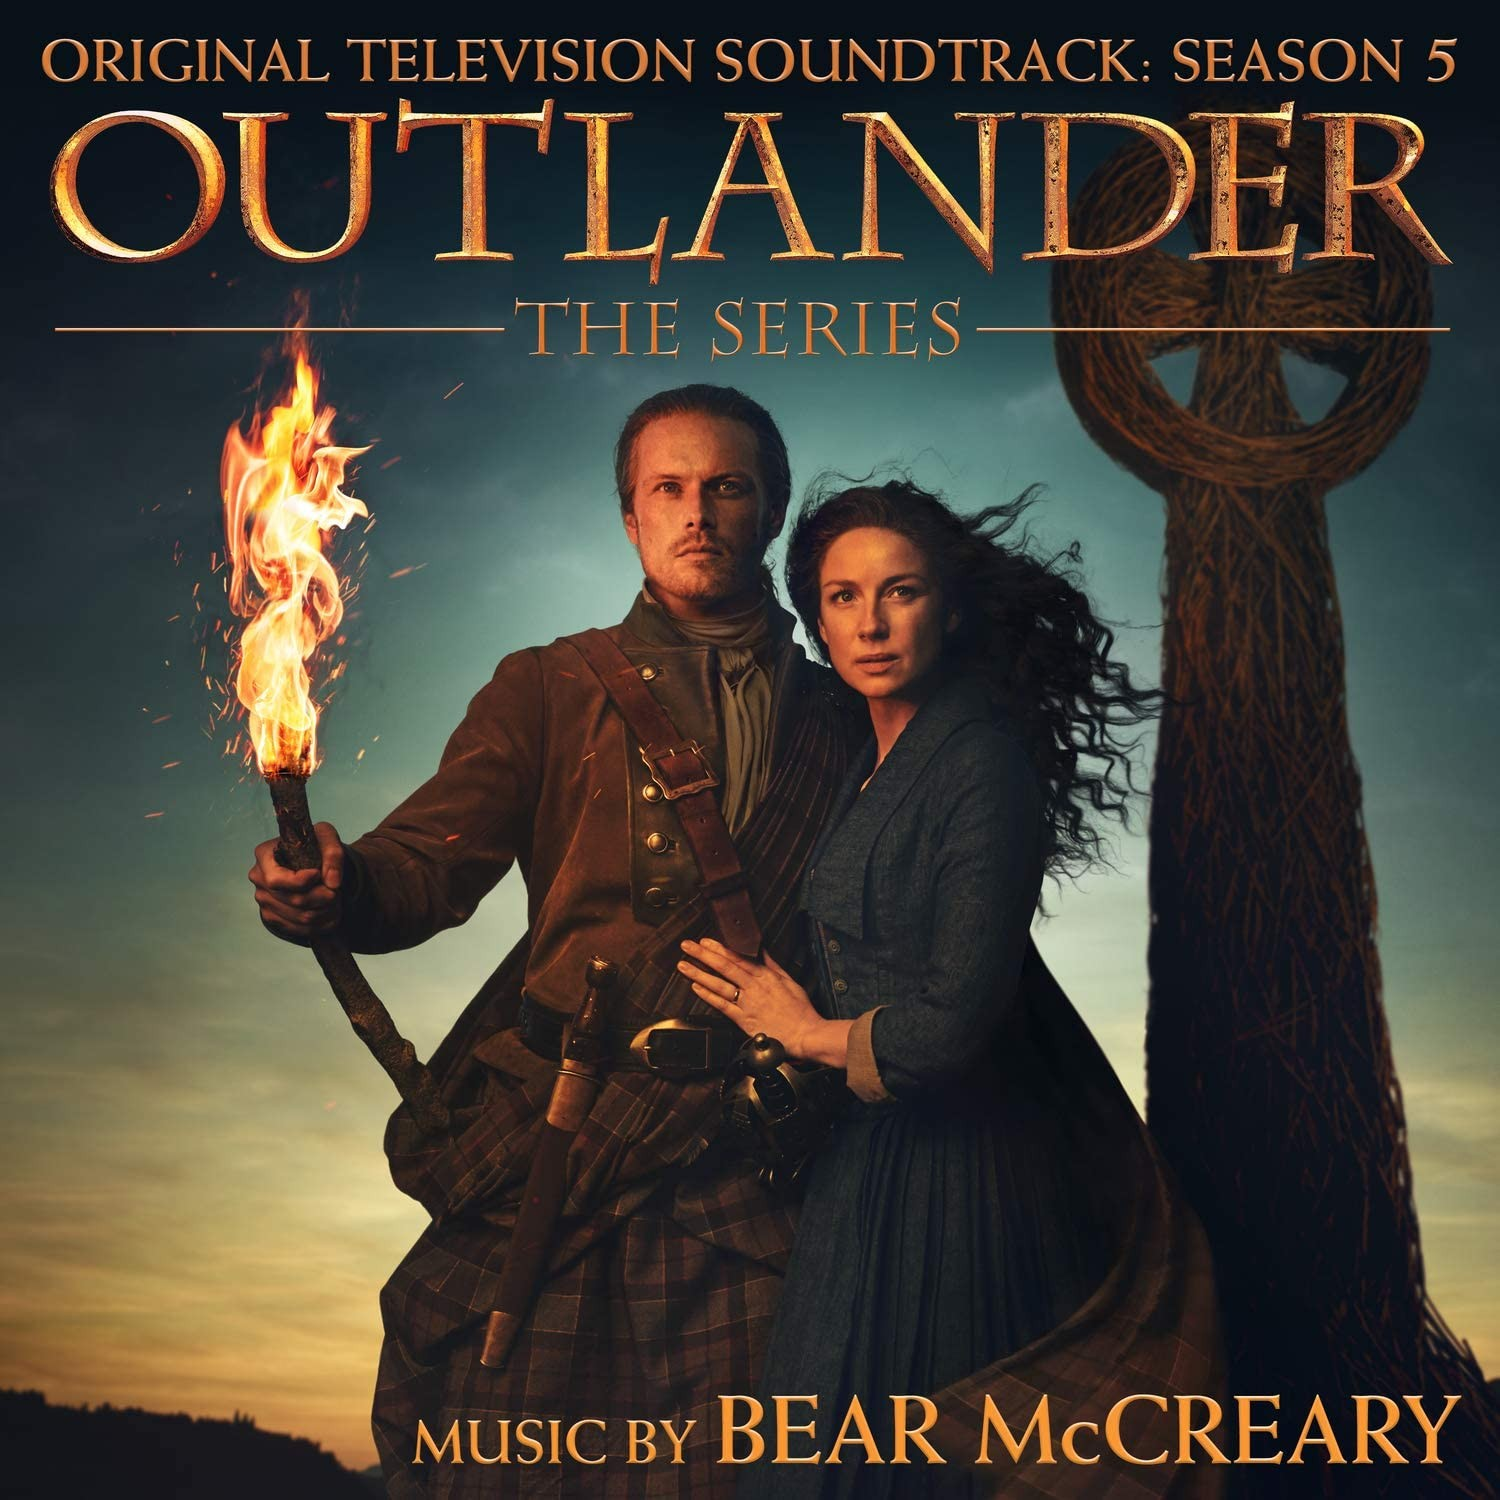 Outlander (Sezon 5) - okładka soundtracku CD (front)